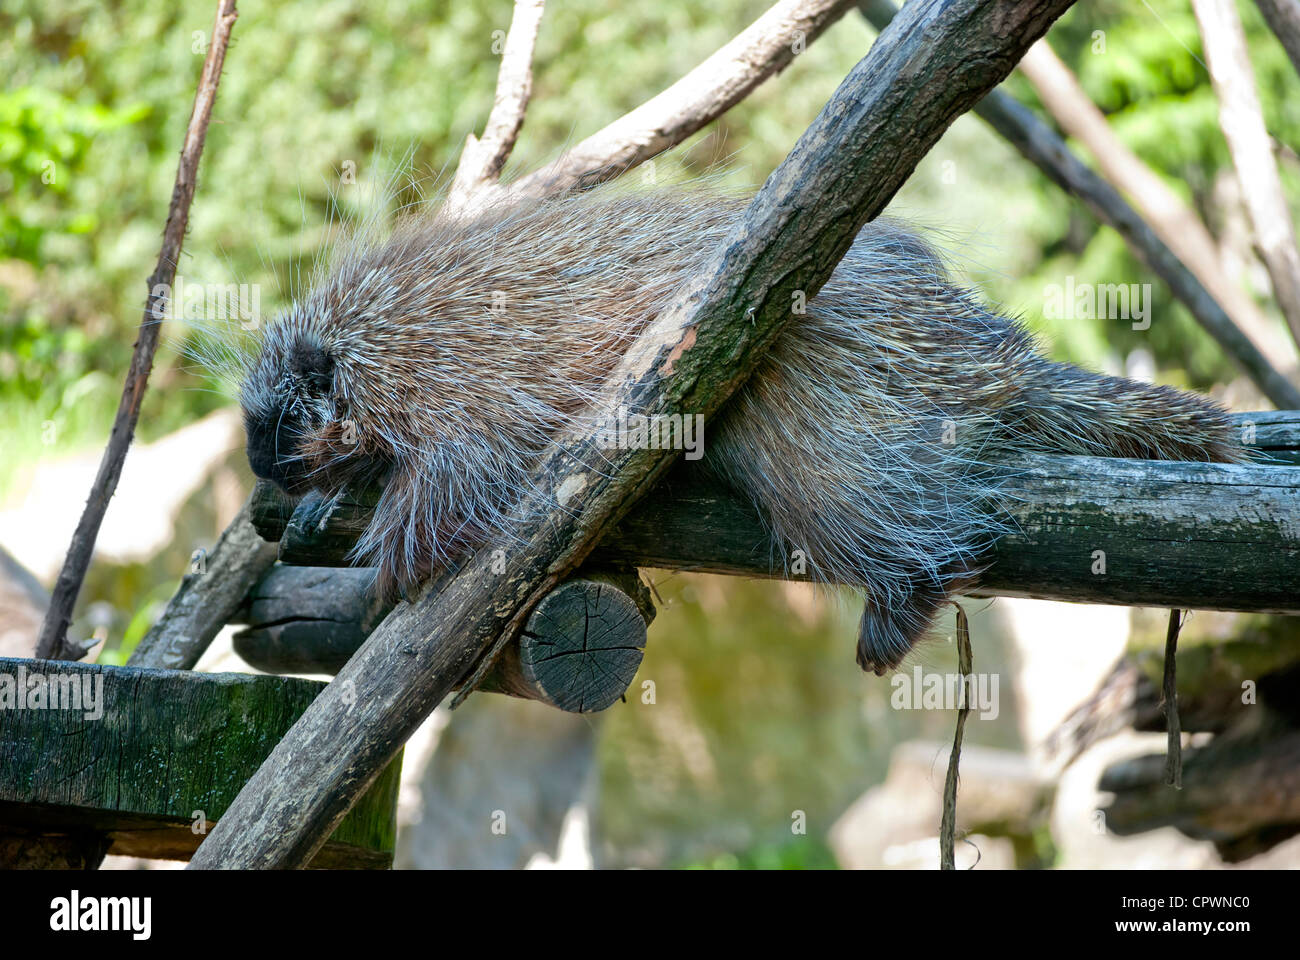 New world porcupine sleeping on the tree - Stock Image